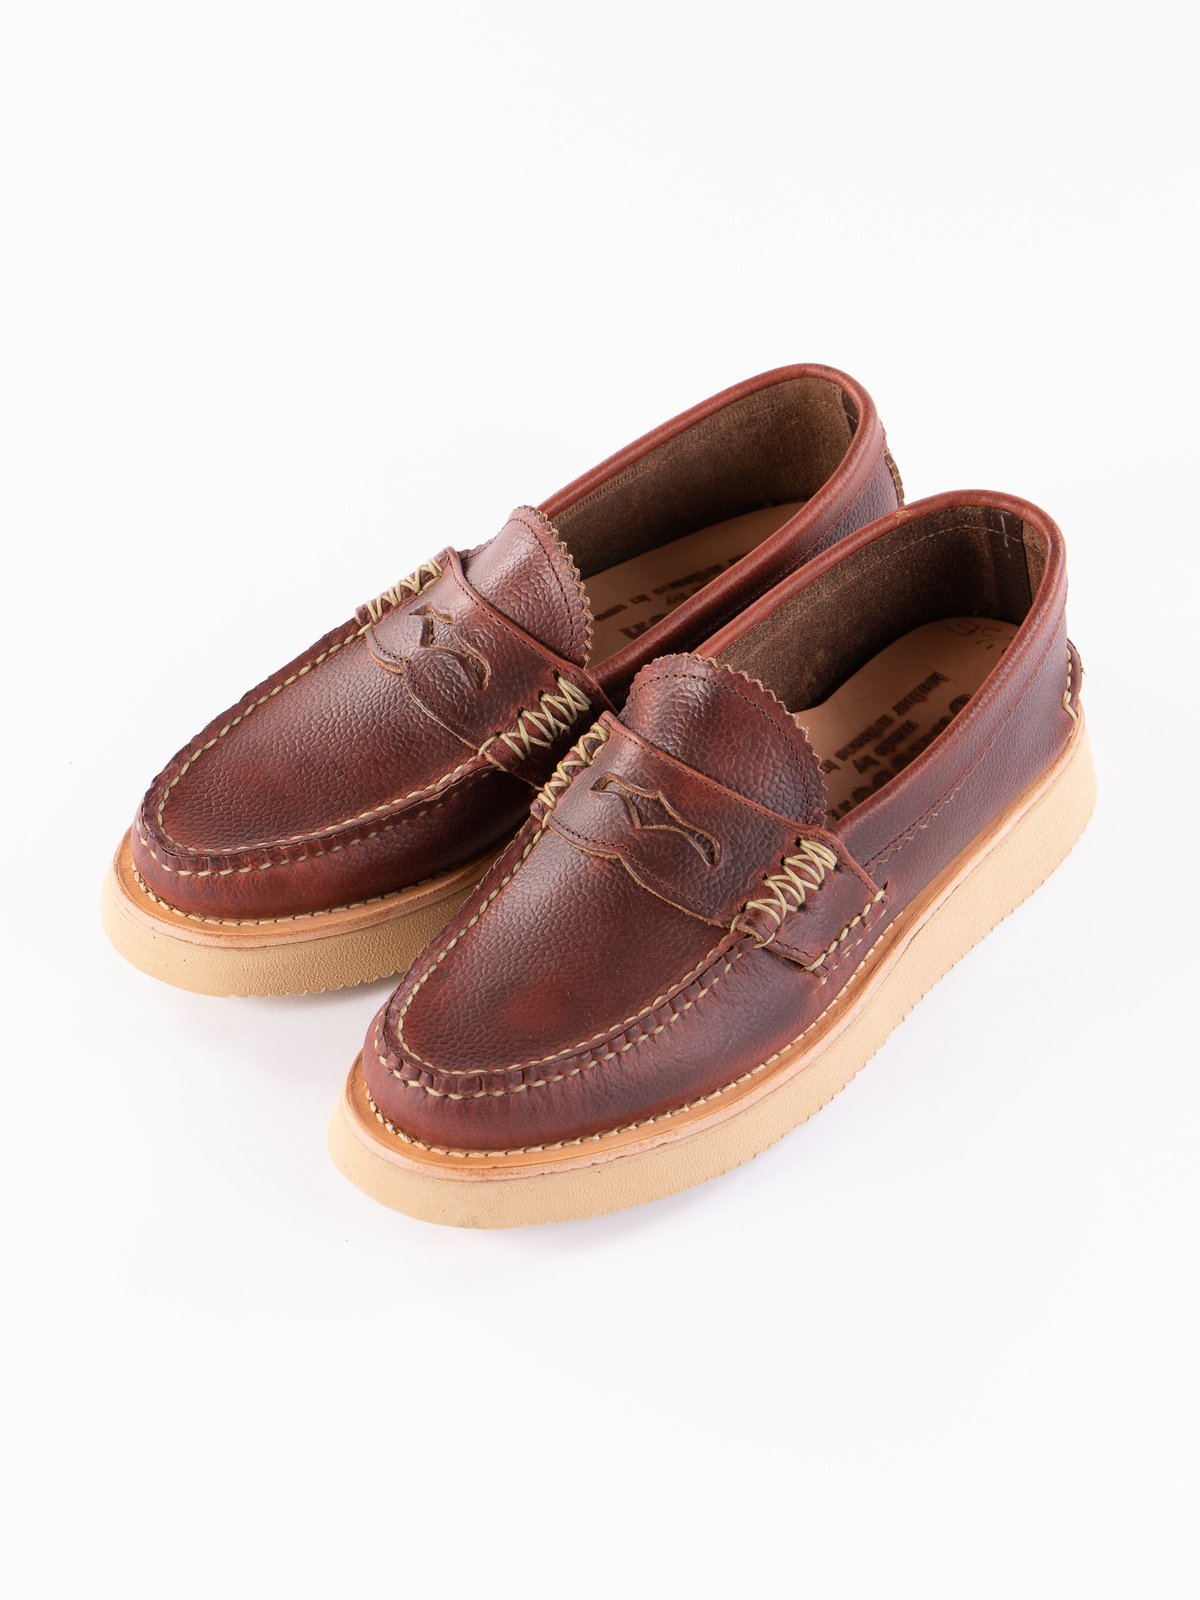 SG Tan Loafer Shoe Exclusive - Image 2